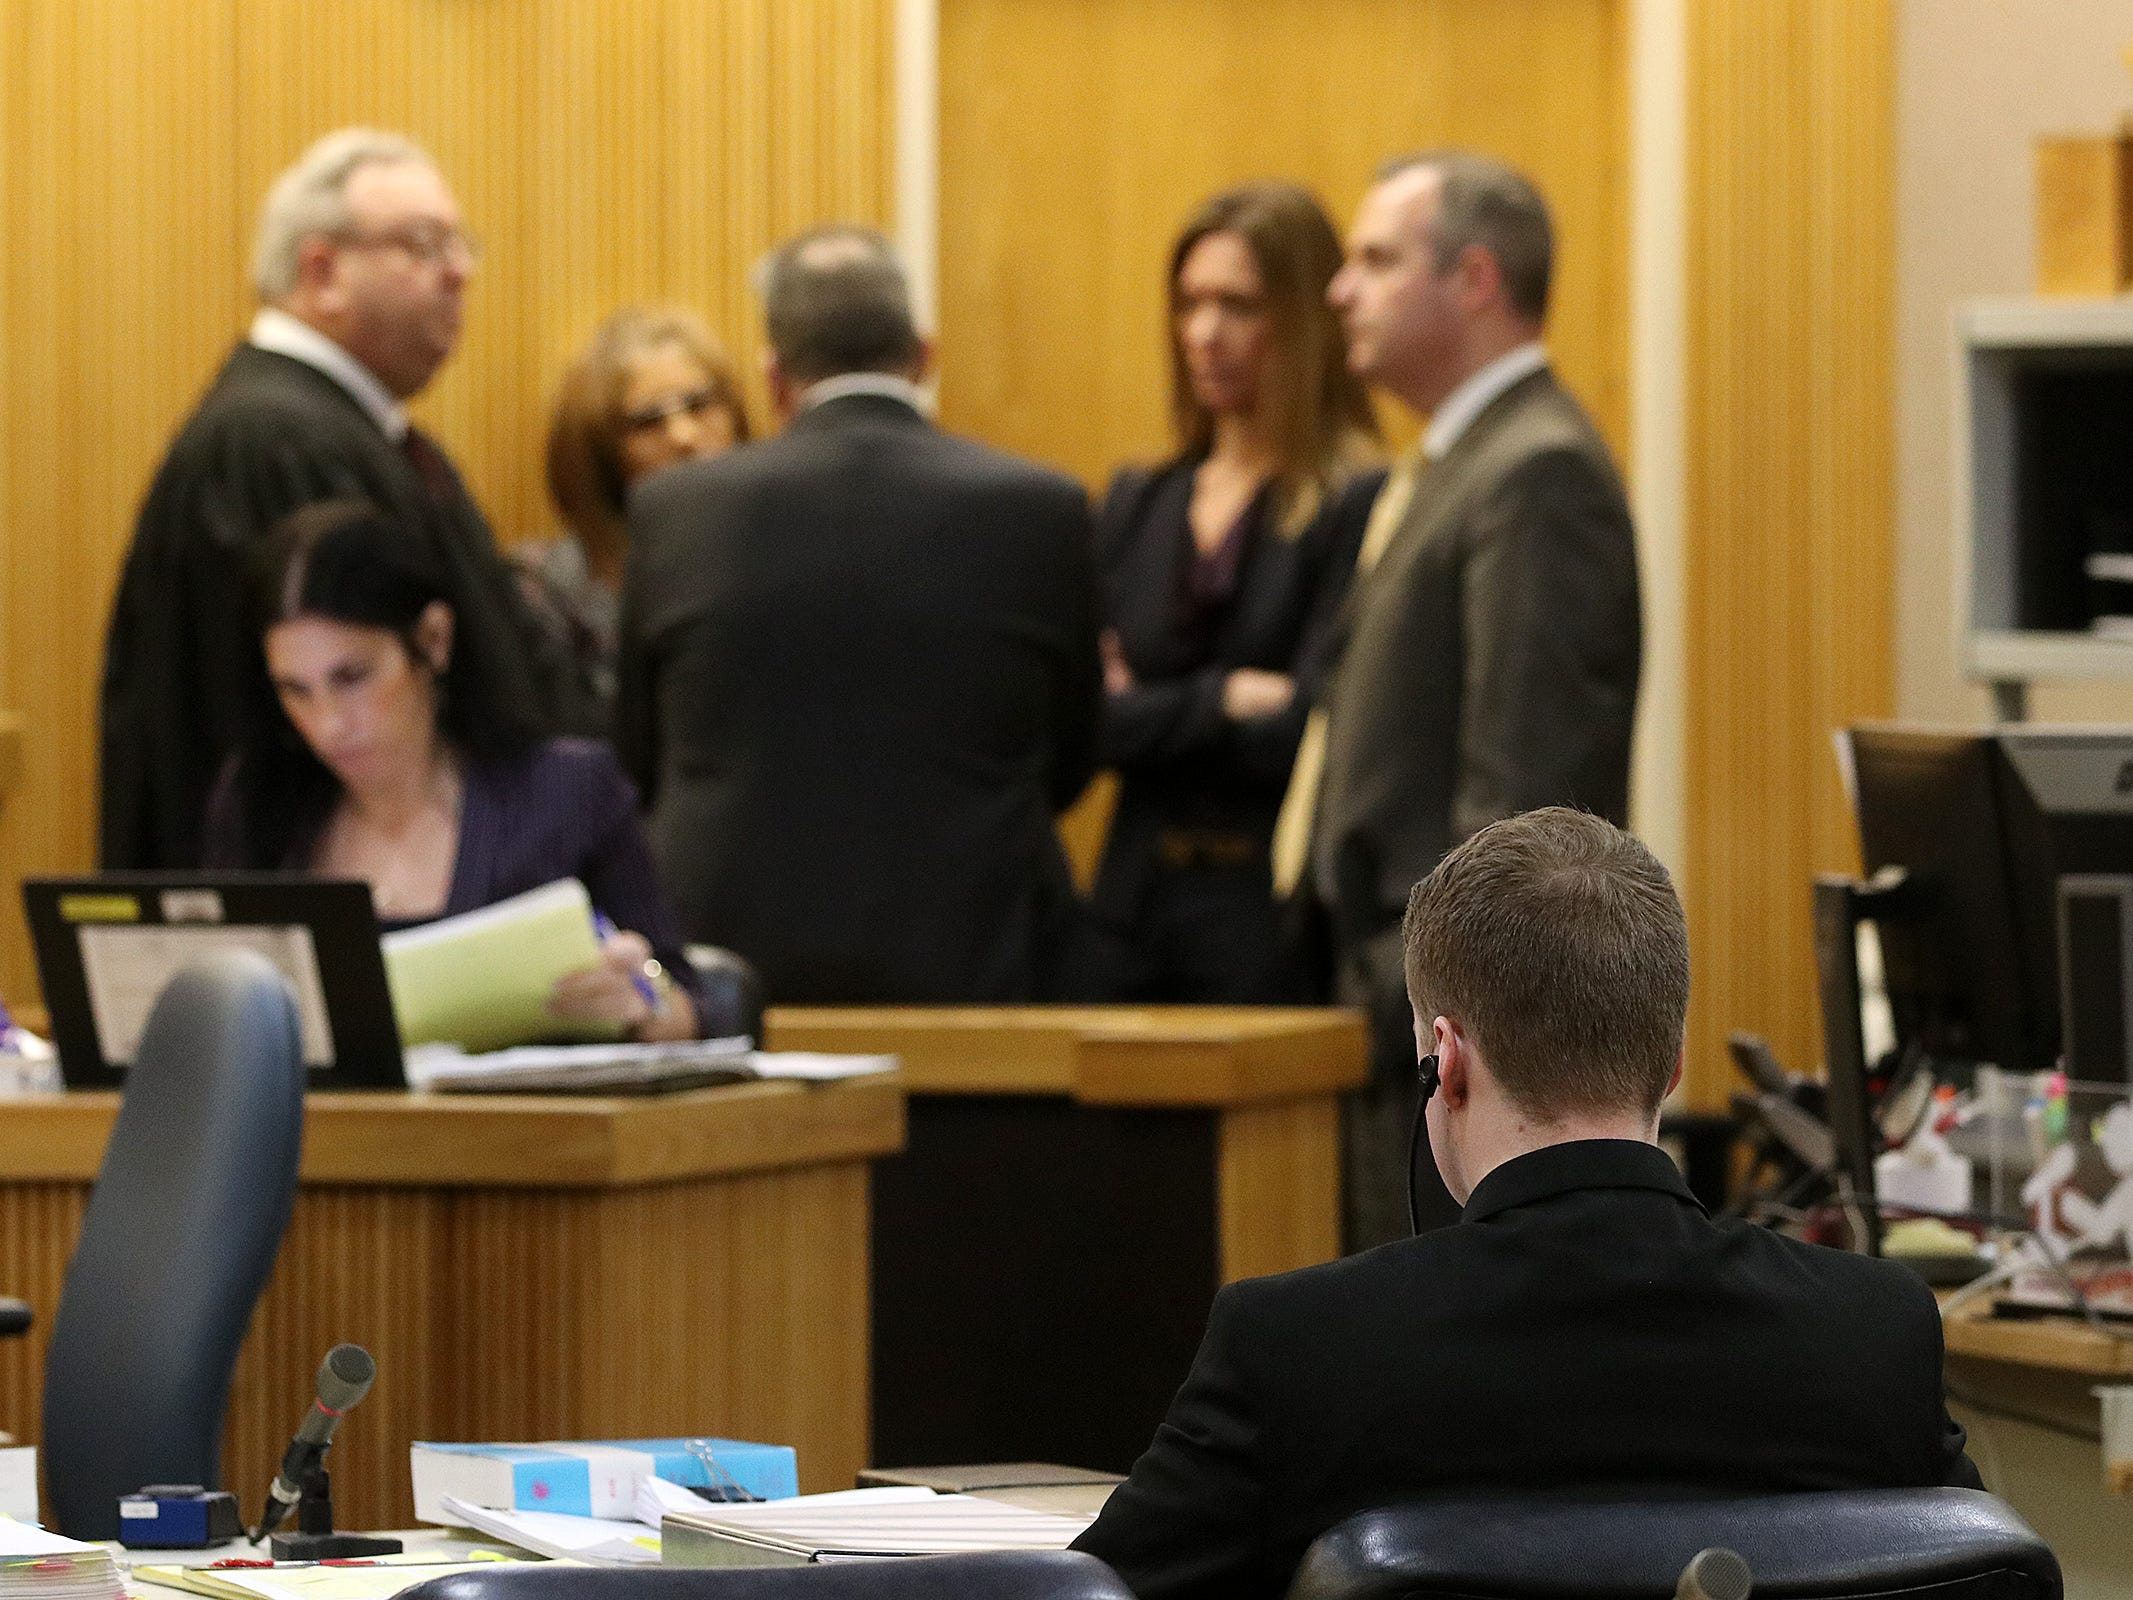 Liam McAtasney, who is charged with the murder of former high school classmate, Sarah Stern, listens during a sidebar during trial before Superior Court Judge Richard W. English at the Monmouth County Courthouse in Freehold, NJ Wednesday, February 13, 2019.  The jury was sent home for the day after Carlos Diaz-Cobo, the defense attorney, made a motion for a mistrial over a post made on a juror's Facebook page.